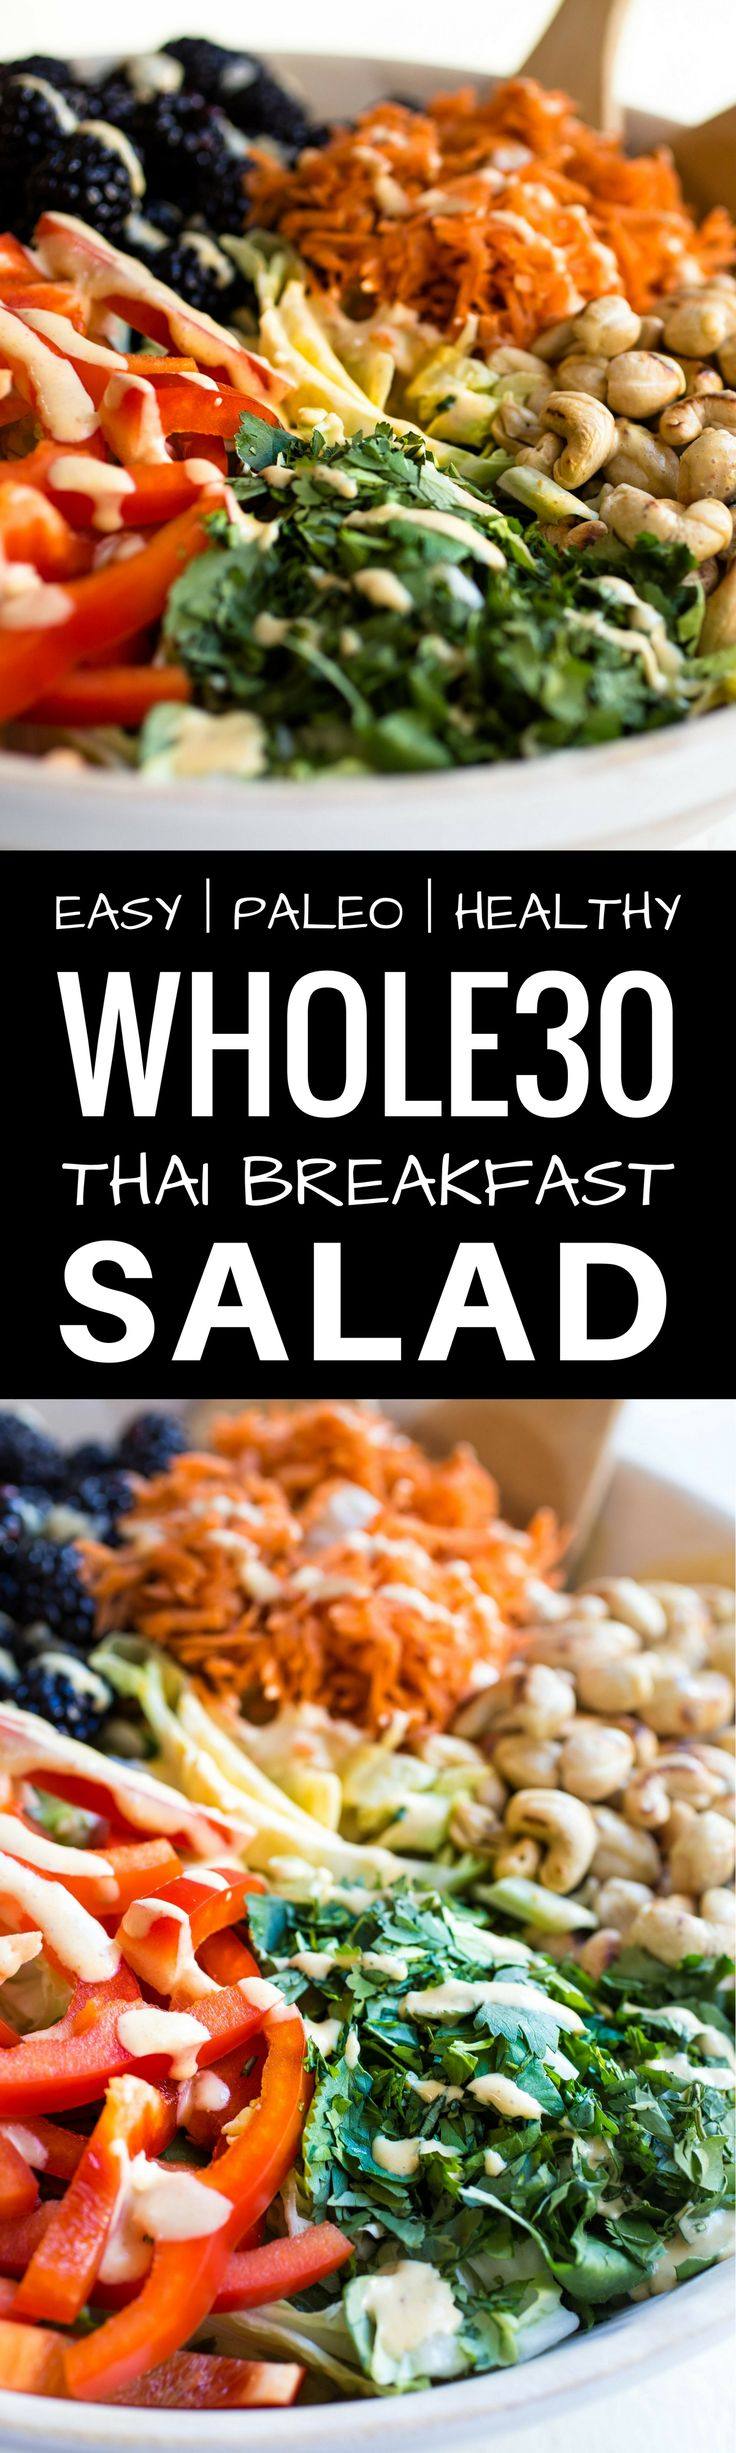 Whole30 Thai Breakfast Bowl Recipe. Whole30 salad…